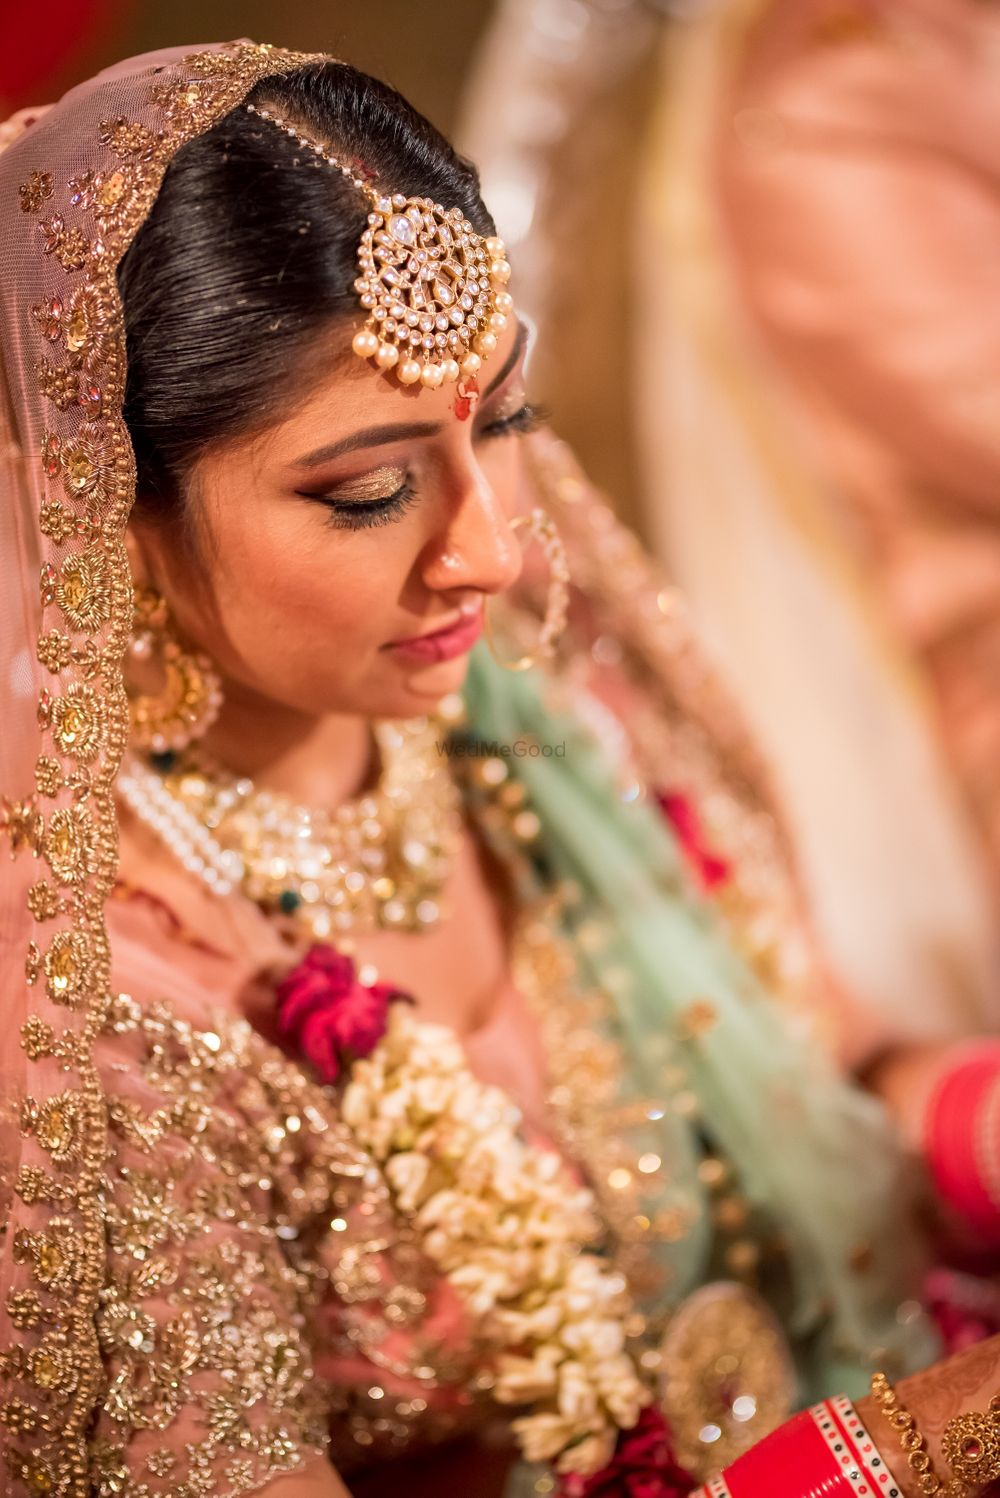 Photo From Priyanka weds Dipen - By Sheetal Dang Gupta Makeup Artistry